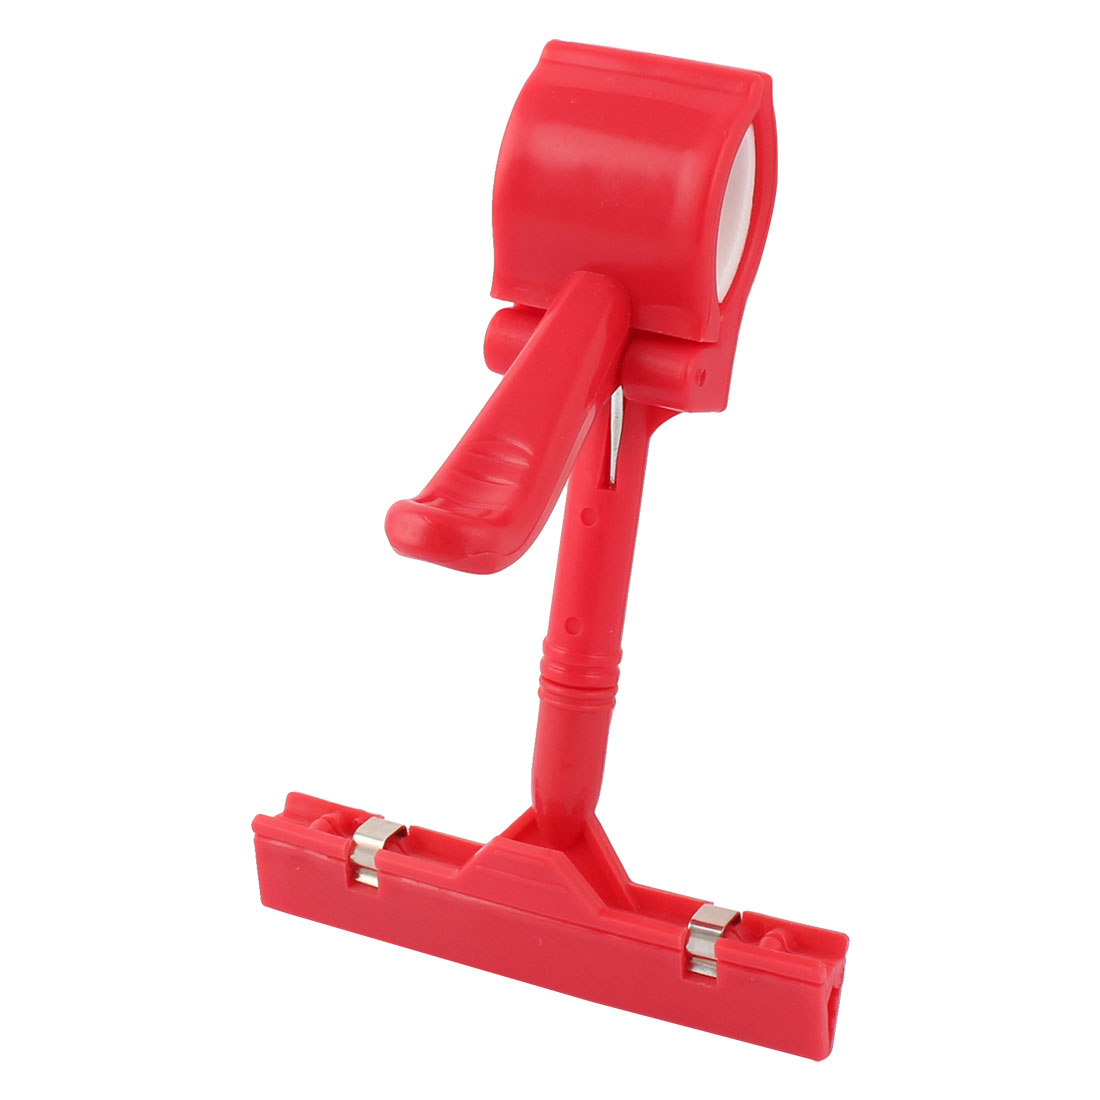 Thumb Design Clamps Poster Sign Card Advertising Display Clip Holder Red